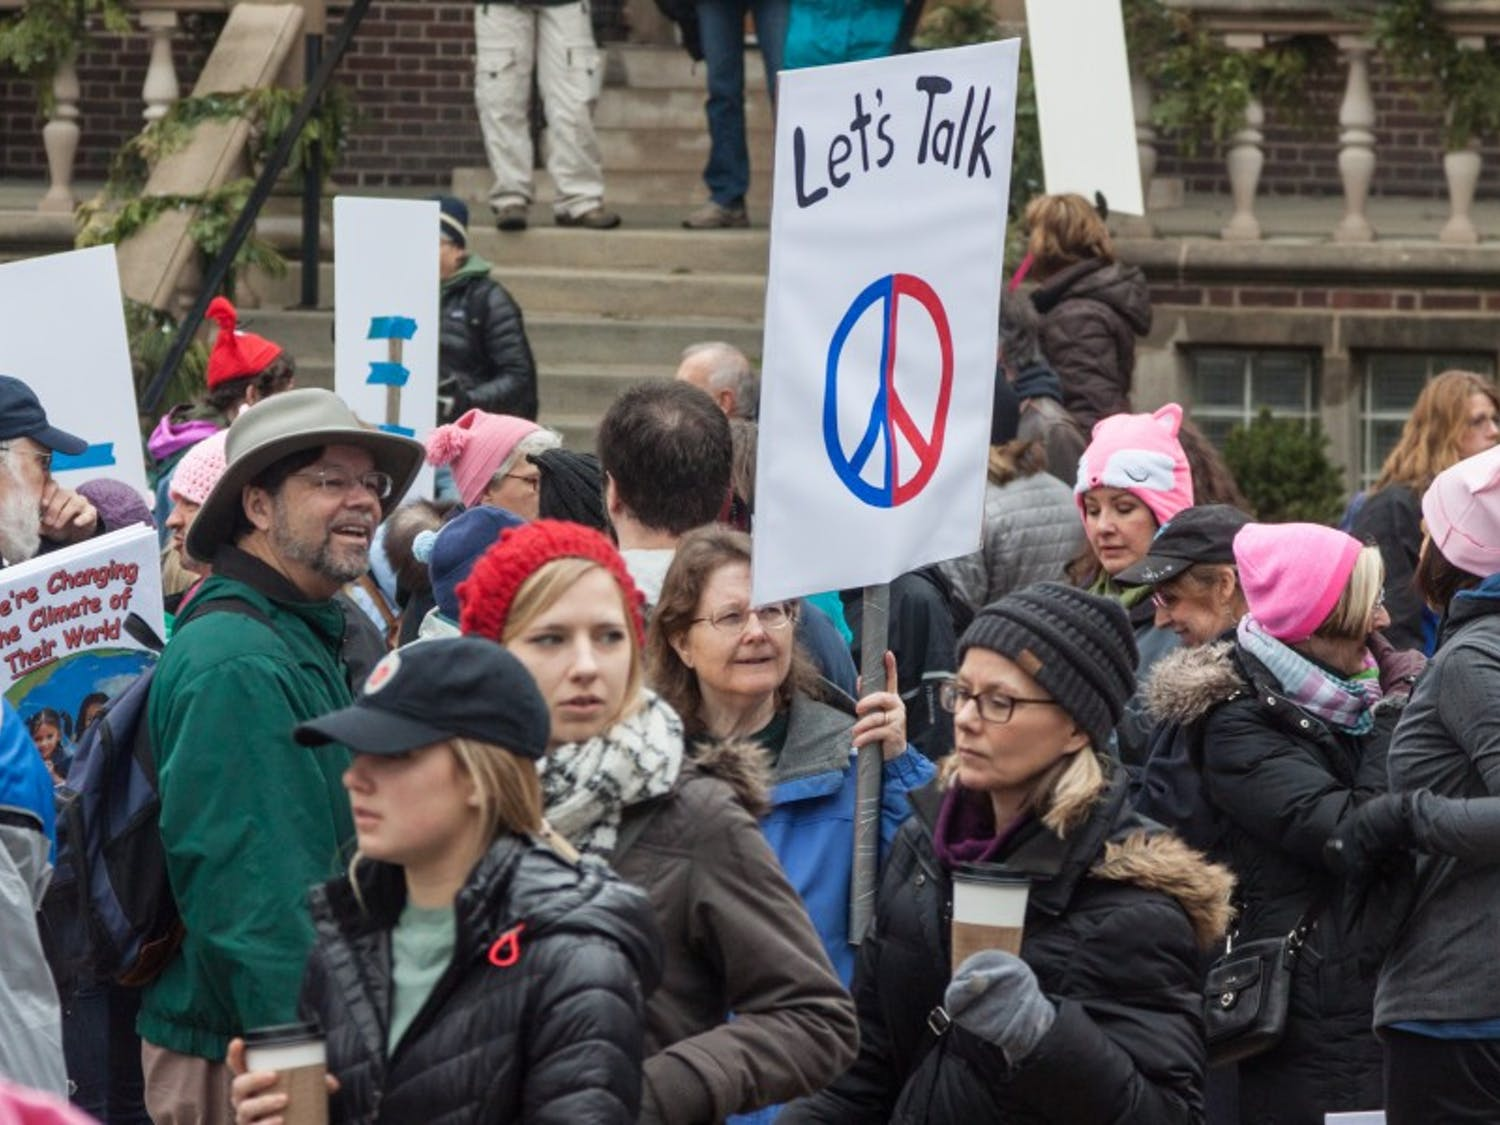 Demonstrators gathered on Library Mall to promote agendas for Industrial Workers of the World, Young Americans for Liberty and Young Americans for Freedom Friday.